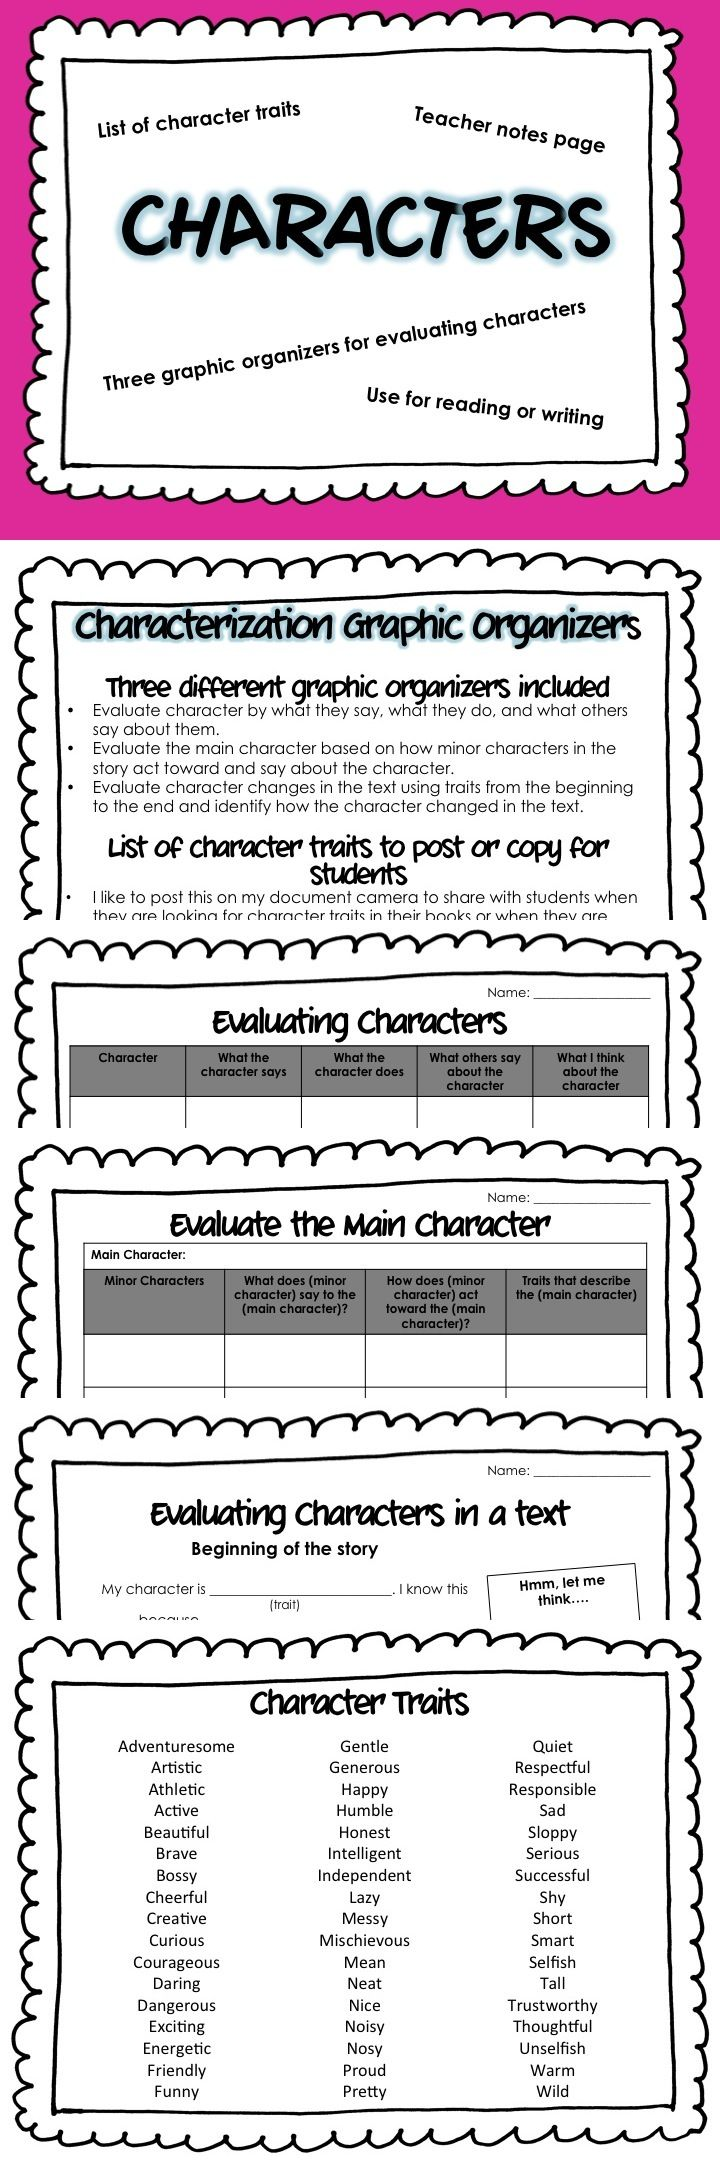 Charlotte s Web Character Traits   Fancy Reading Ideas   Pinterest     Pinterest Critical Thinking Traits   Characteristics